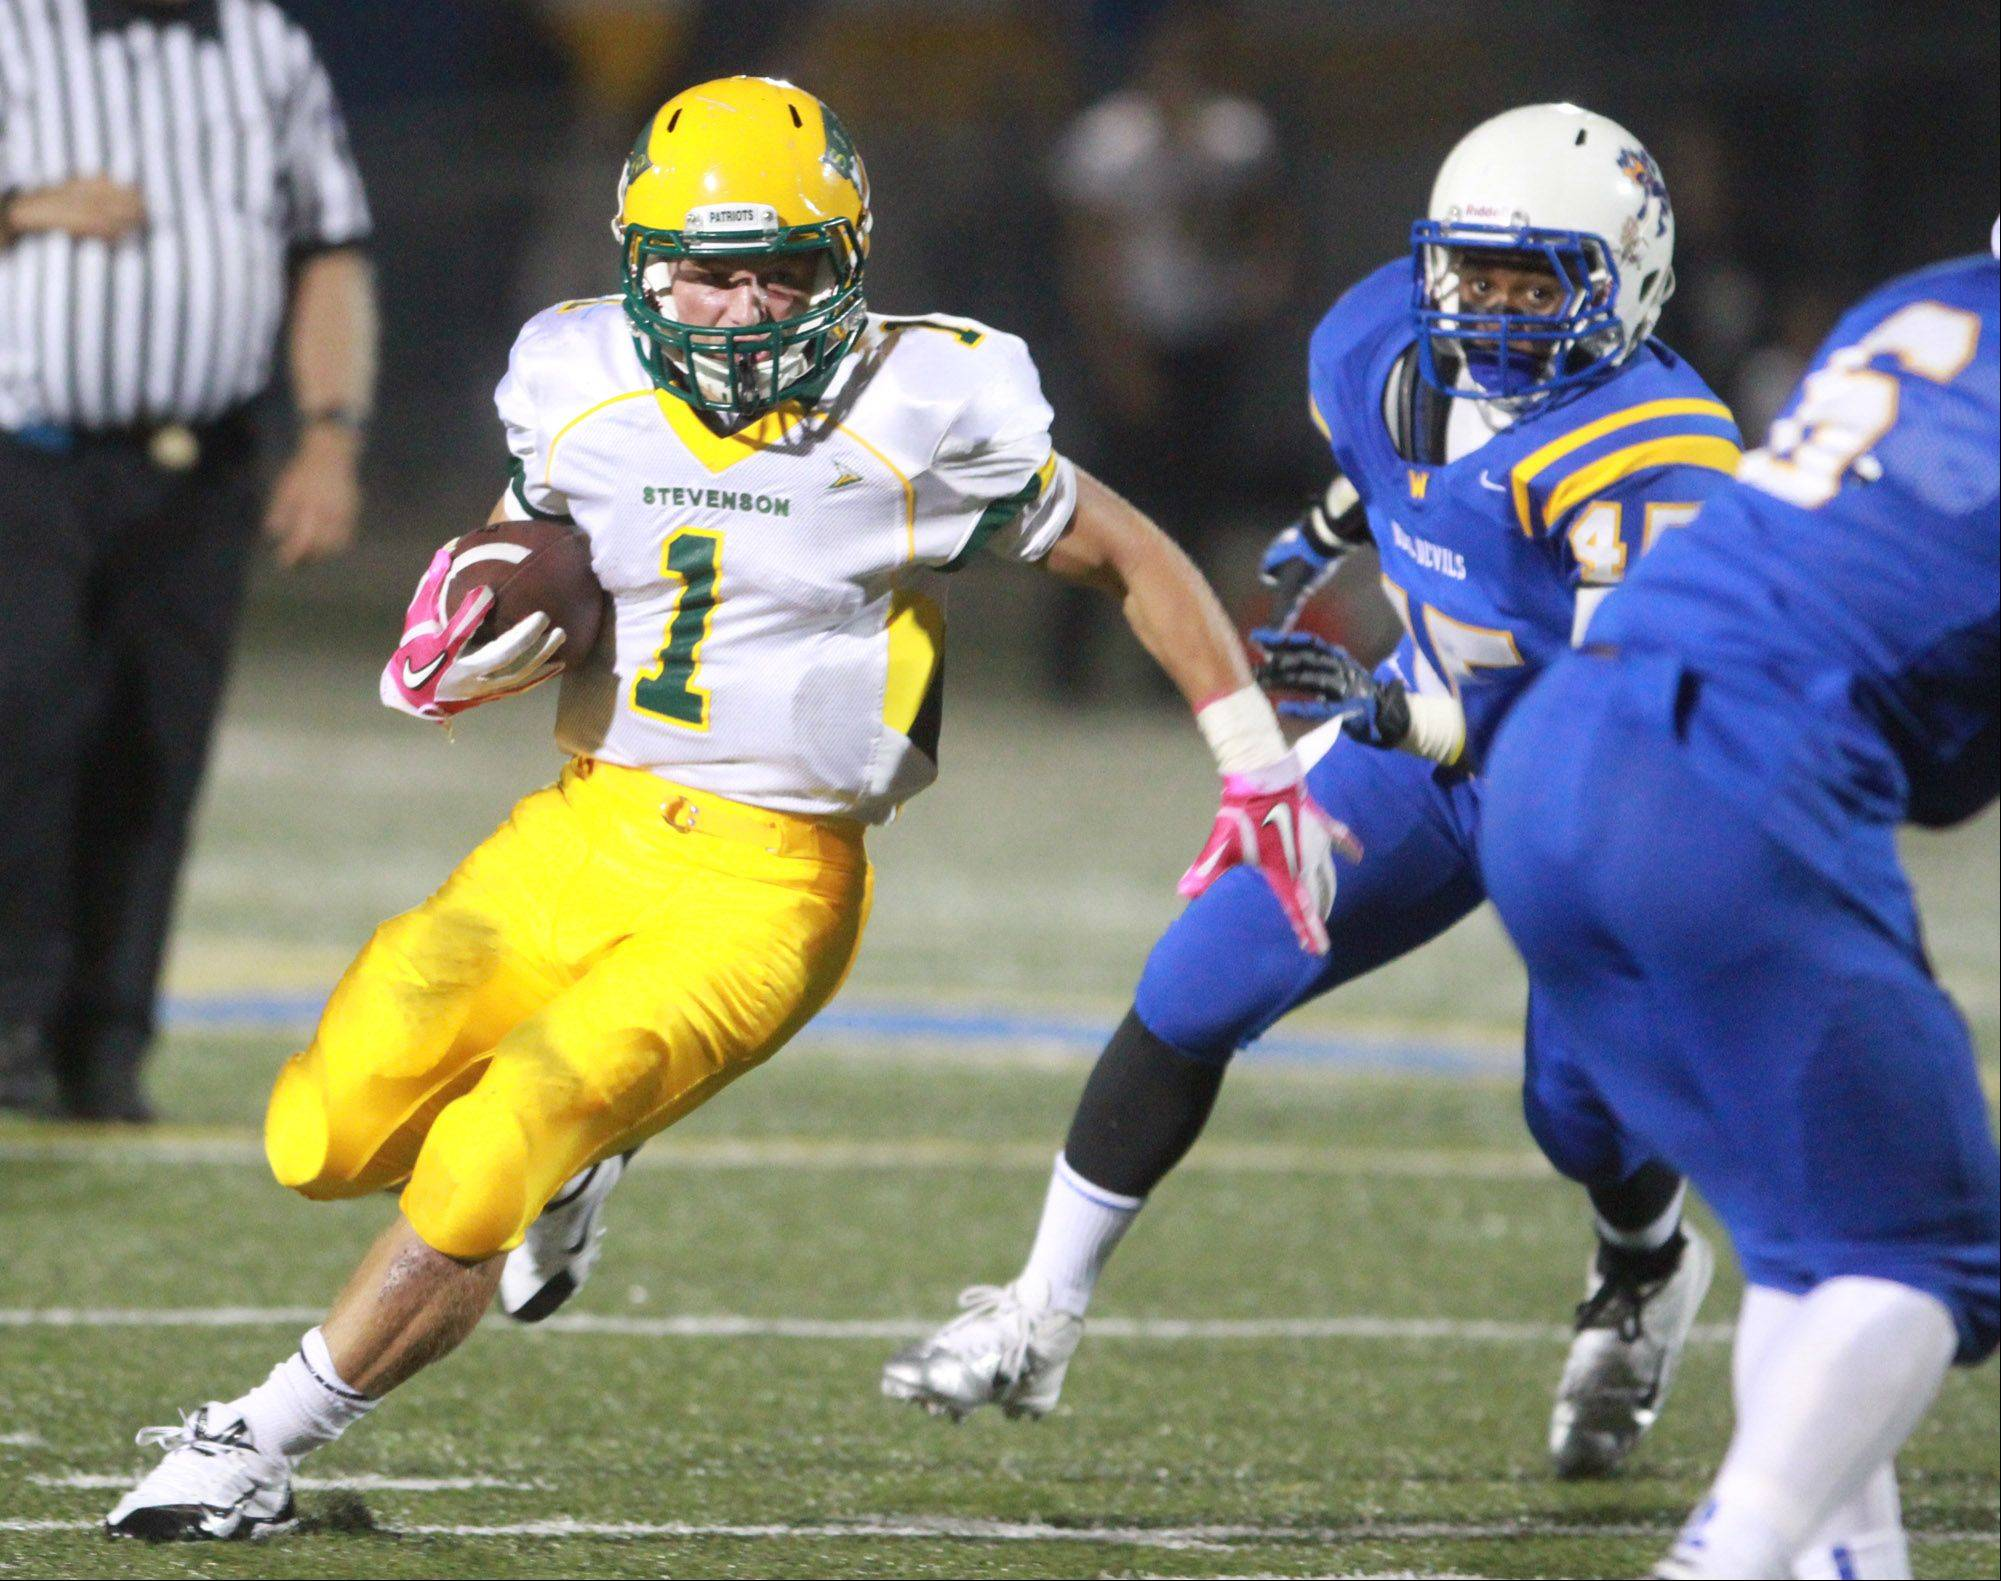 Stevenson running back Conor Okmin runs the ball against Warren.